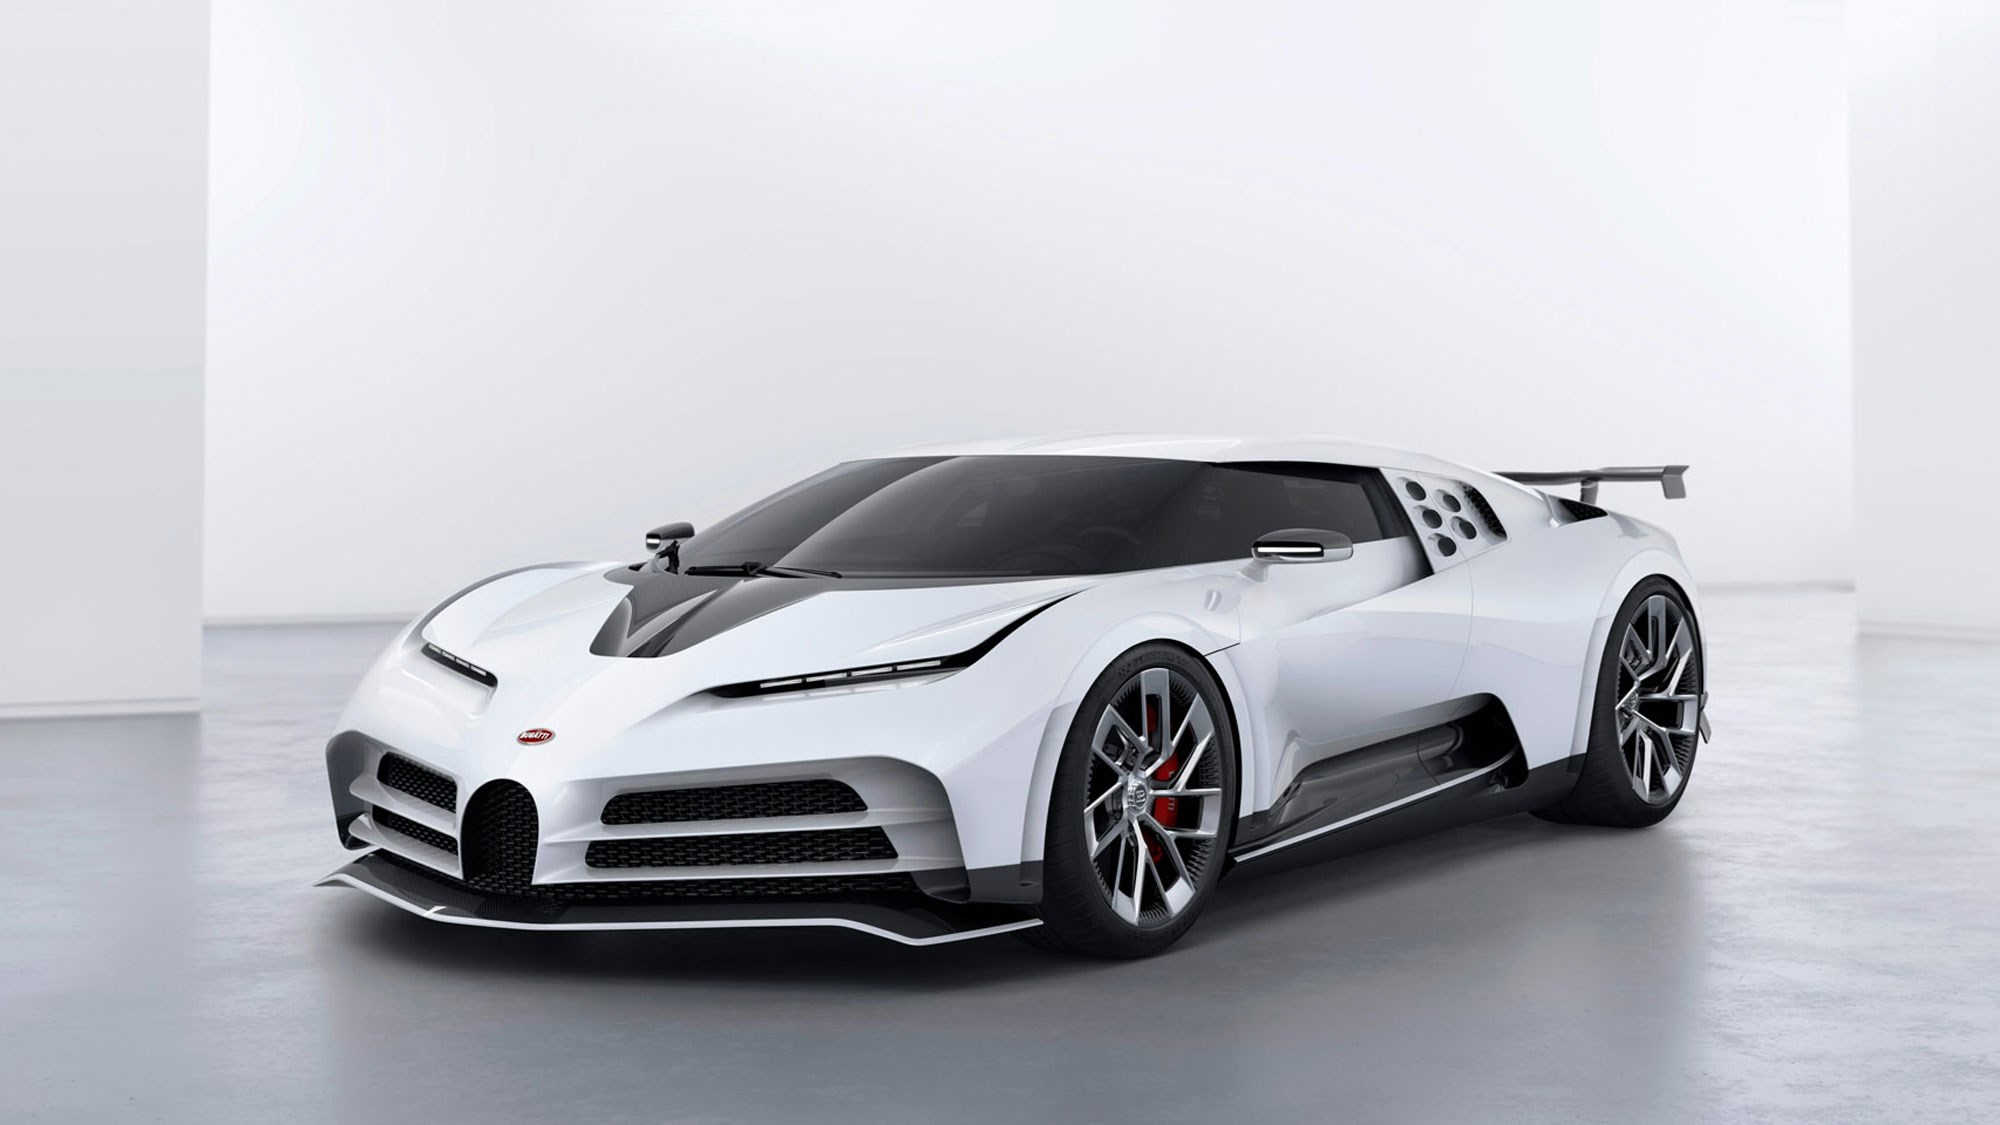 Bugatti Centodieci: the EB110 gets a 2019 makeover